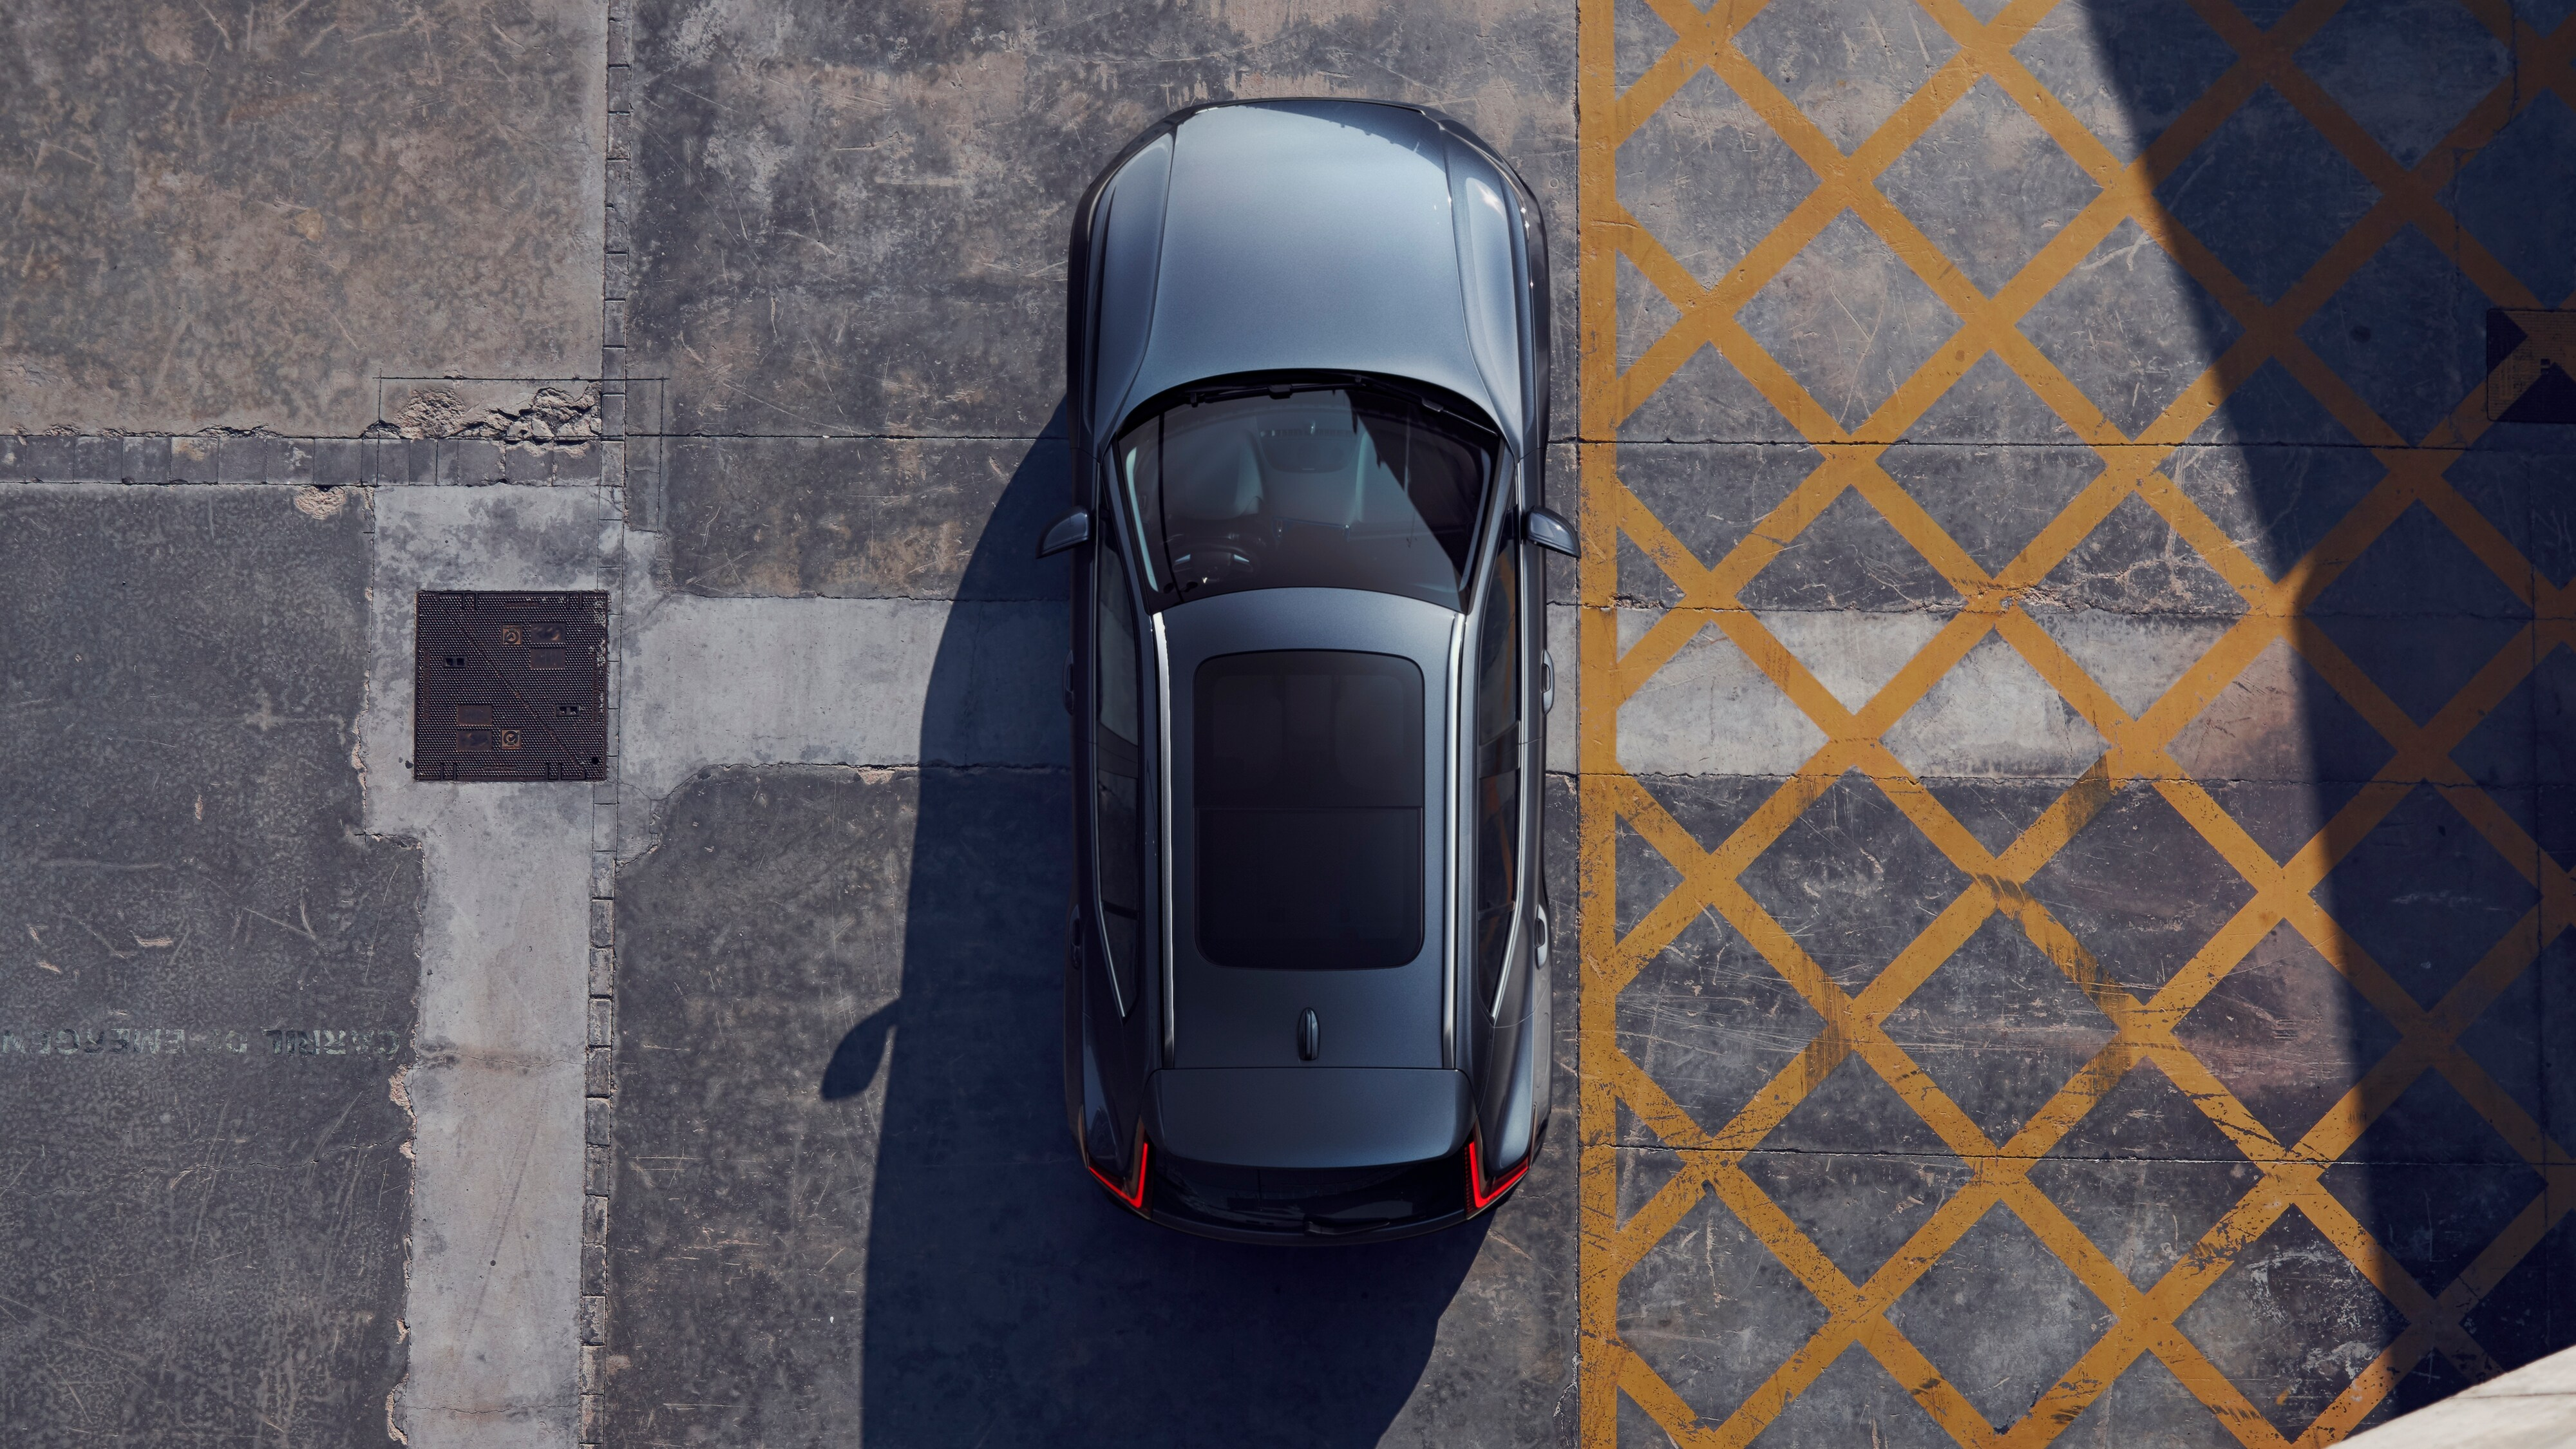 Top down view of the Volvo XC40 Inscription parked on concrete